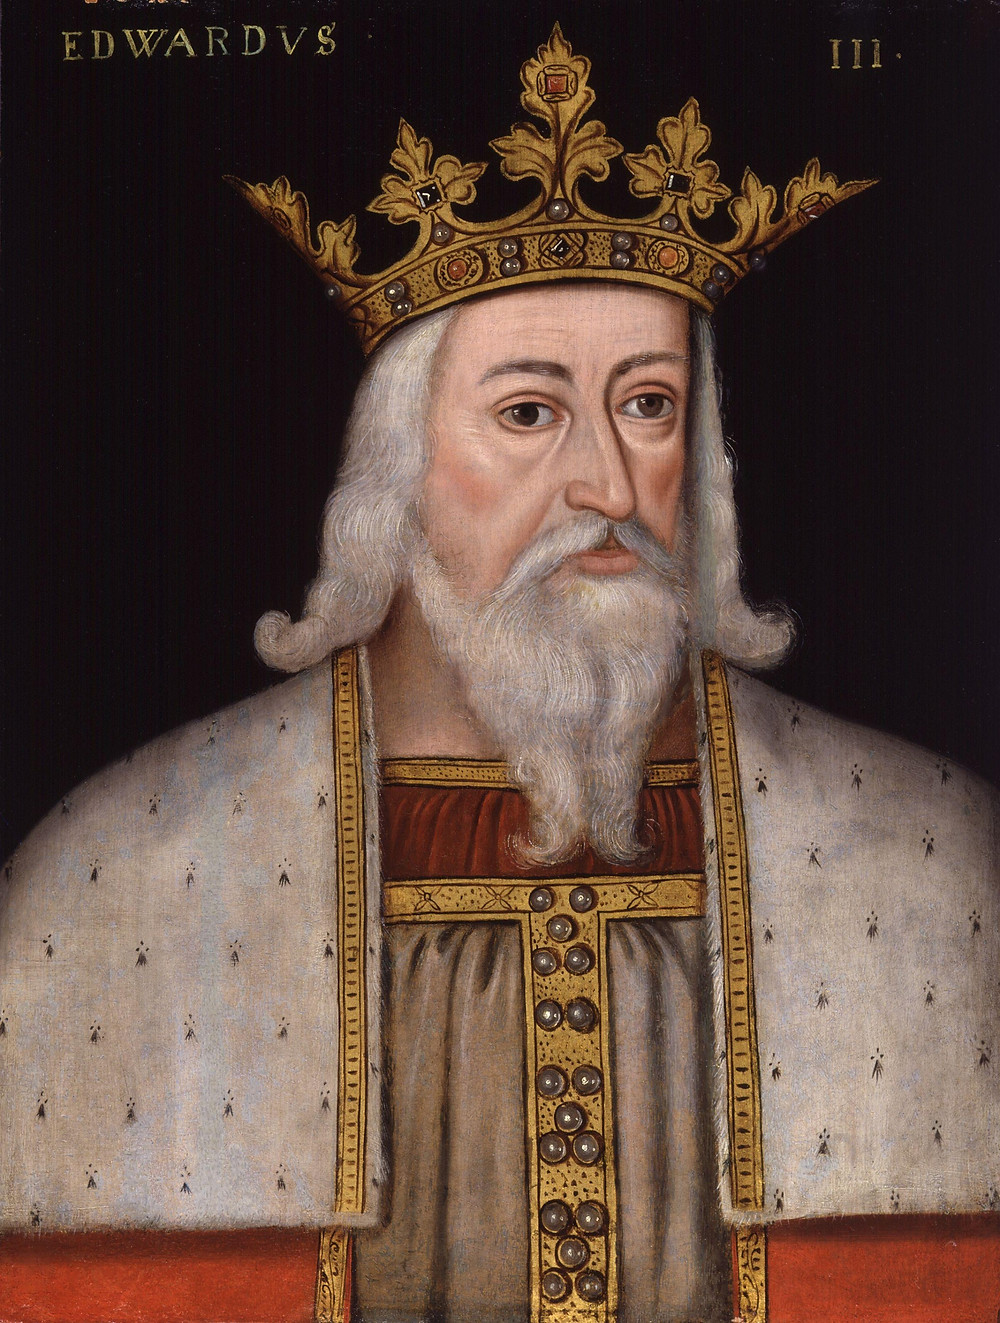 King Edward III, by unknown artist from the end of the 16th century.